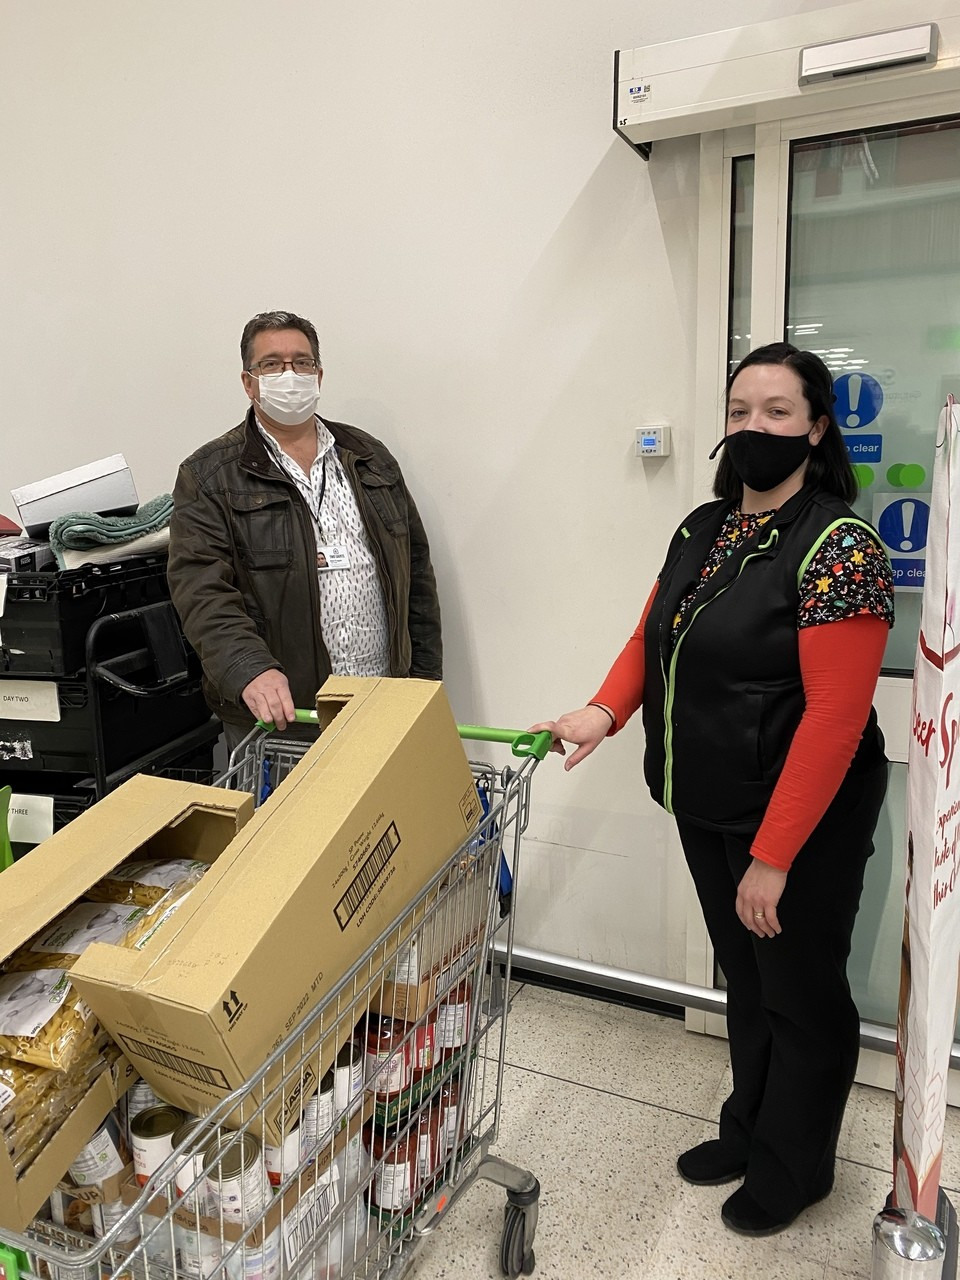 Local charity donations | Asda Portsmouth